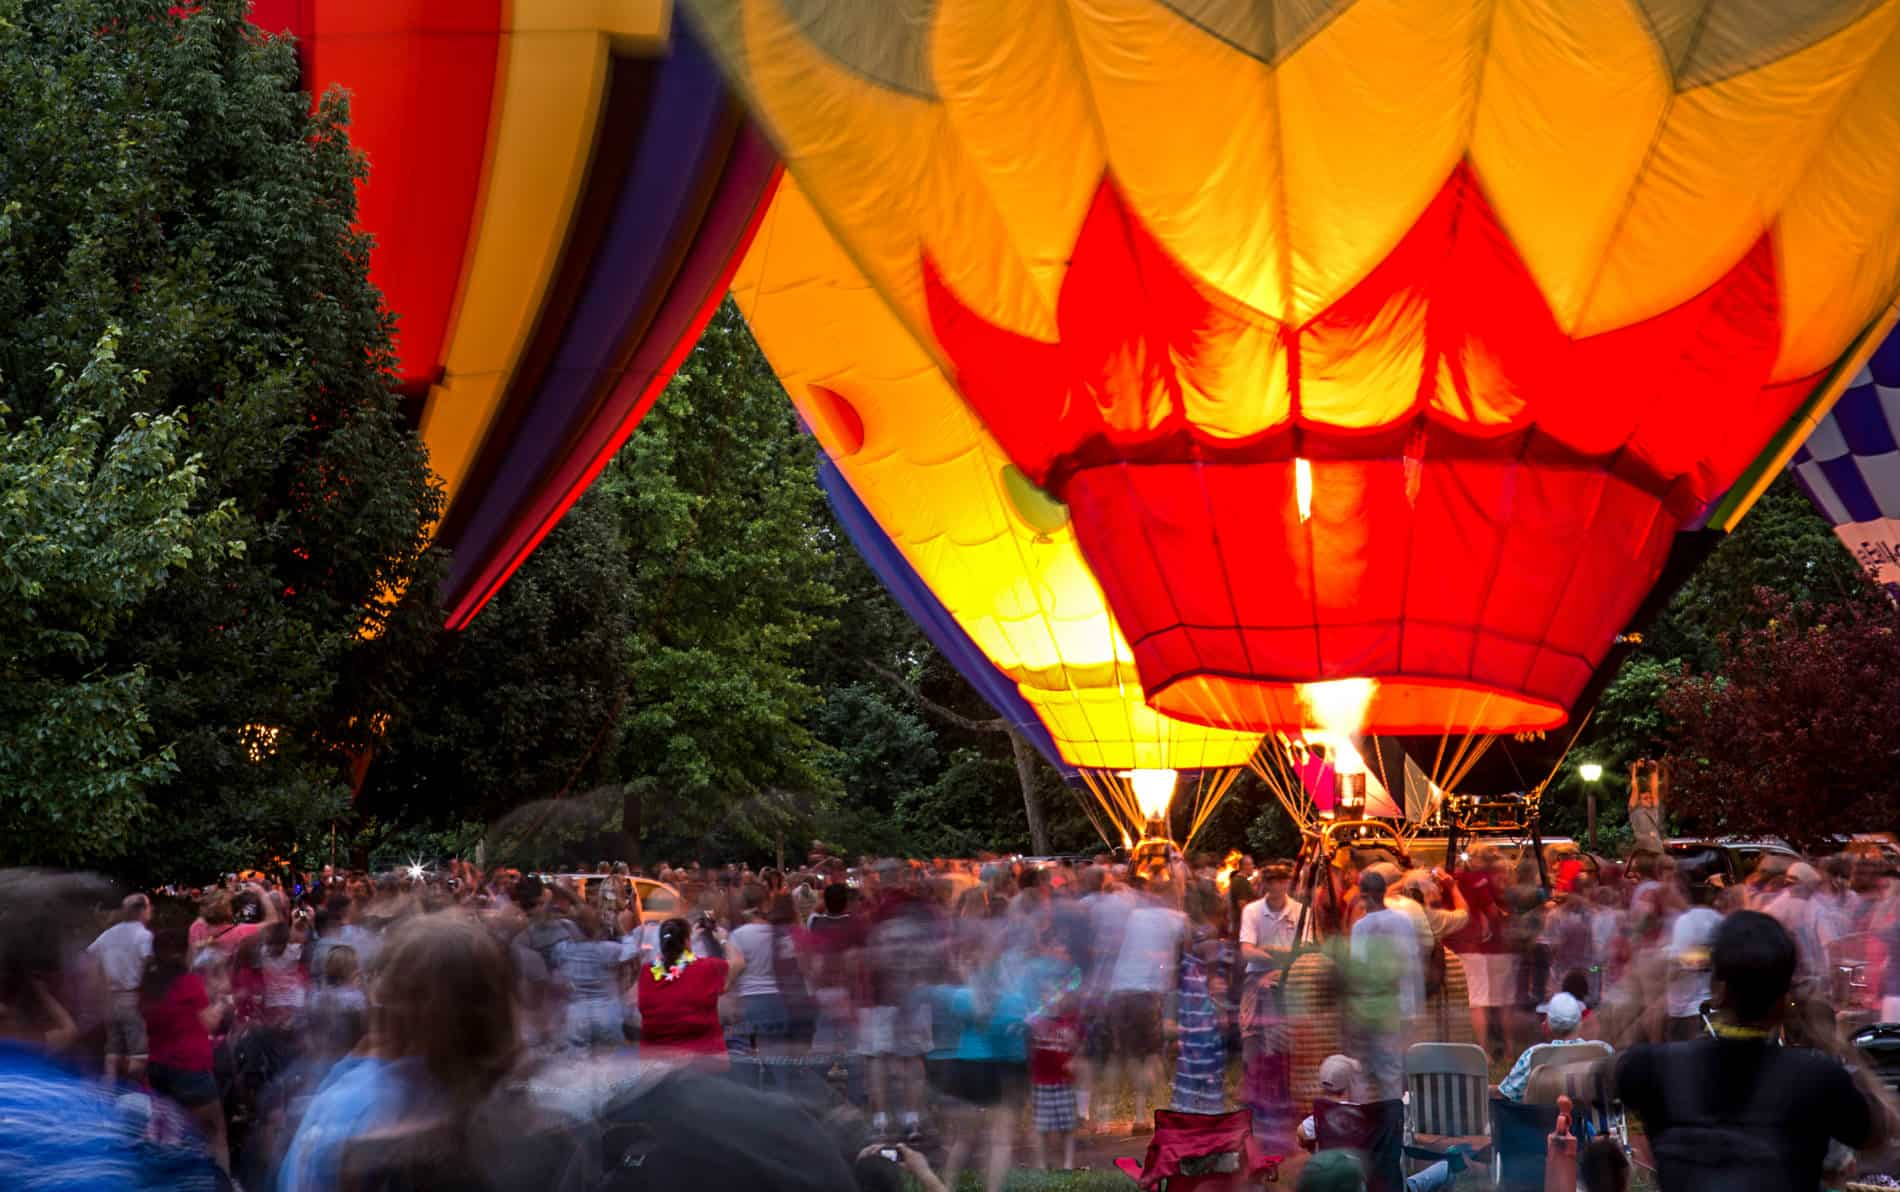 Red, yellow, green and blue hot air balloons surrounded by green trees and a crowd of people